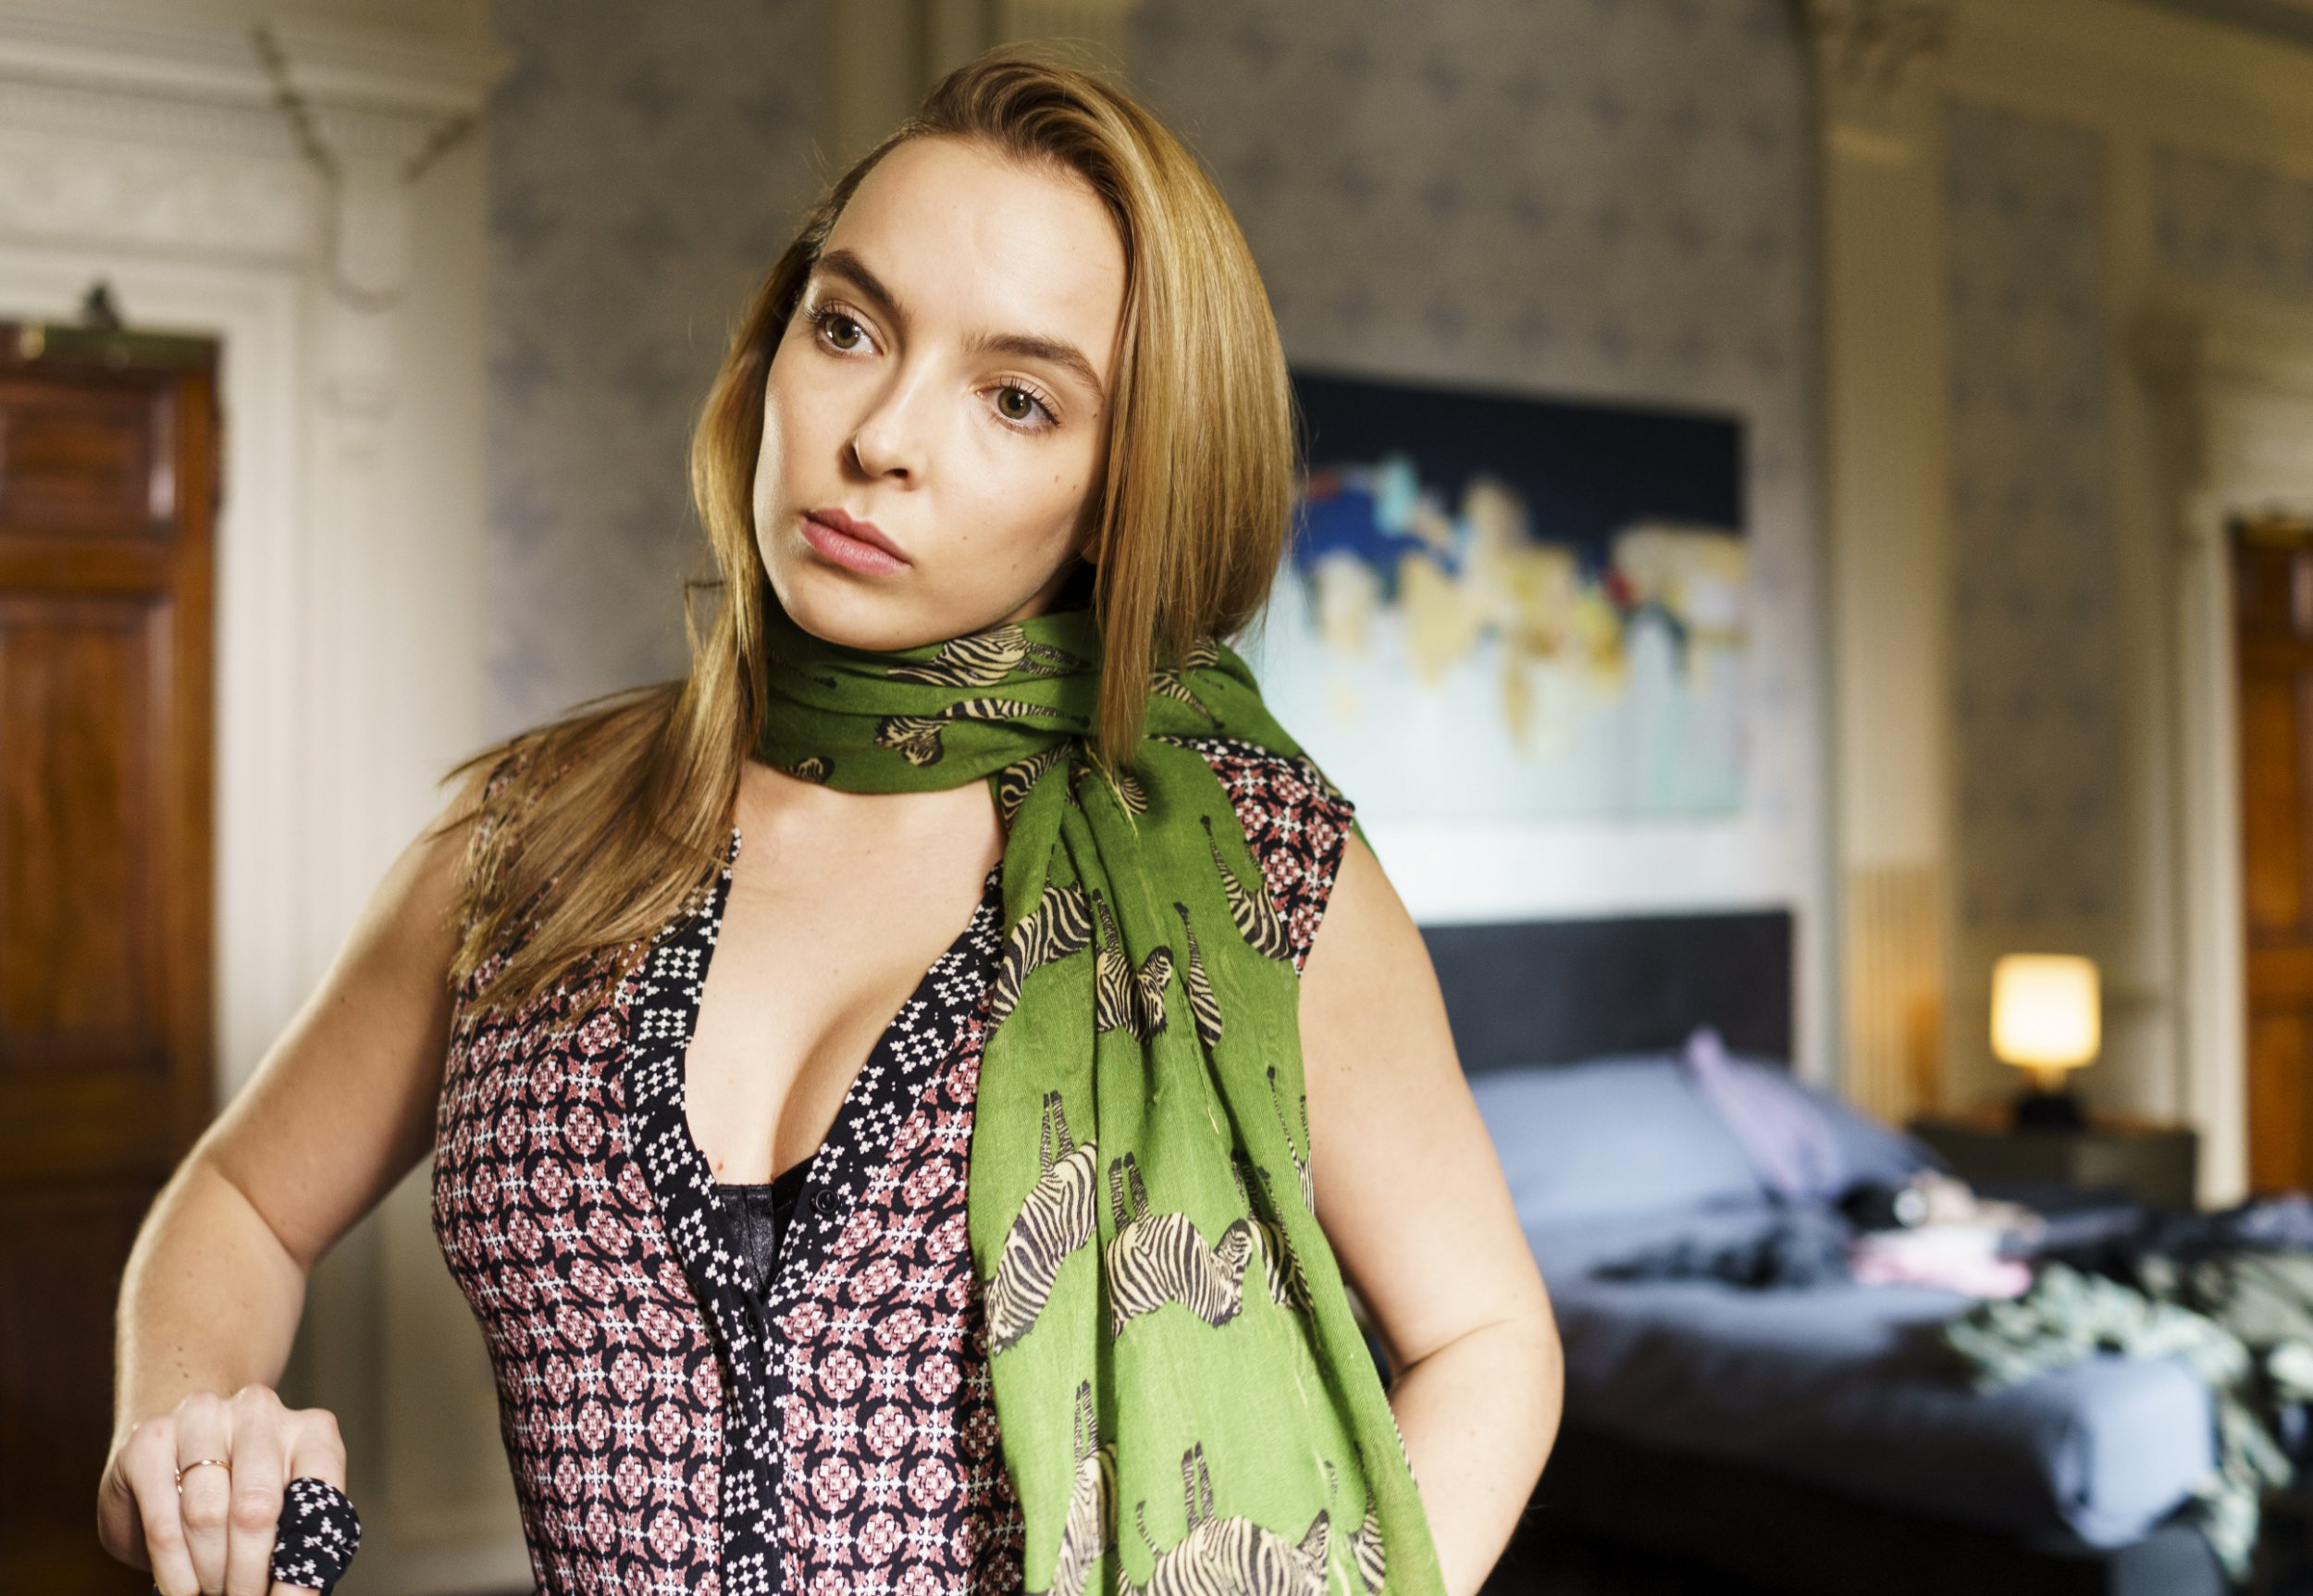 UK. Jodie Comer in the ?BBC new TV series : Killing Eve (2018). Plot: A security operative hunts for an assassin. Based on the Villanelle novellas by Luke Jennings. Ref: LMK106-J222-18091 Supplied by LMKMEDIA. Editorial Only. Landmark Media is not the copyright owner of these Film or TV stills but provides a service only for recognised Media outlets. pictures@lmkmedia.com